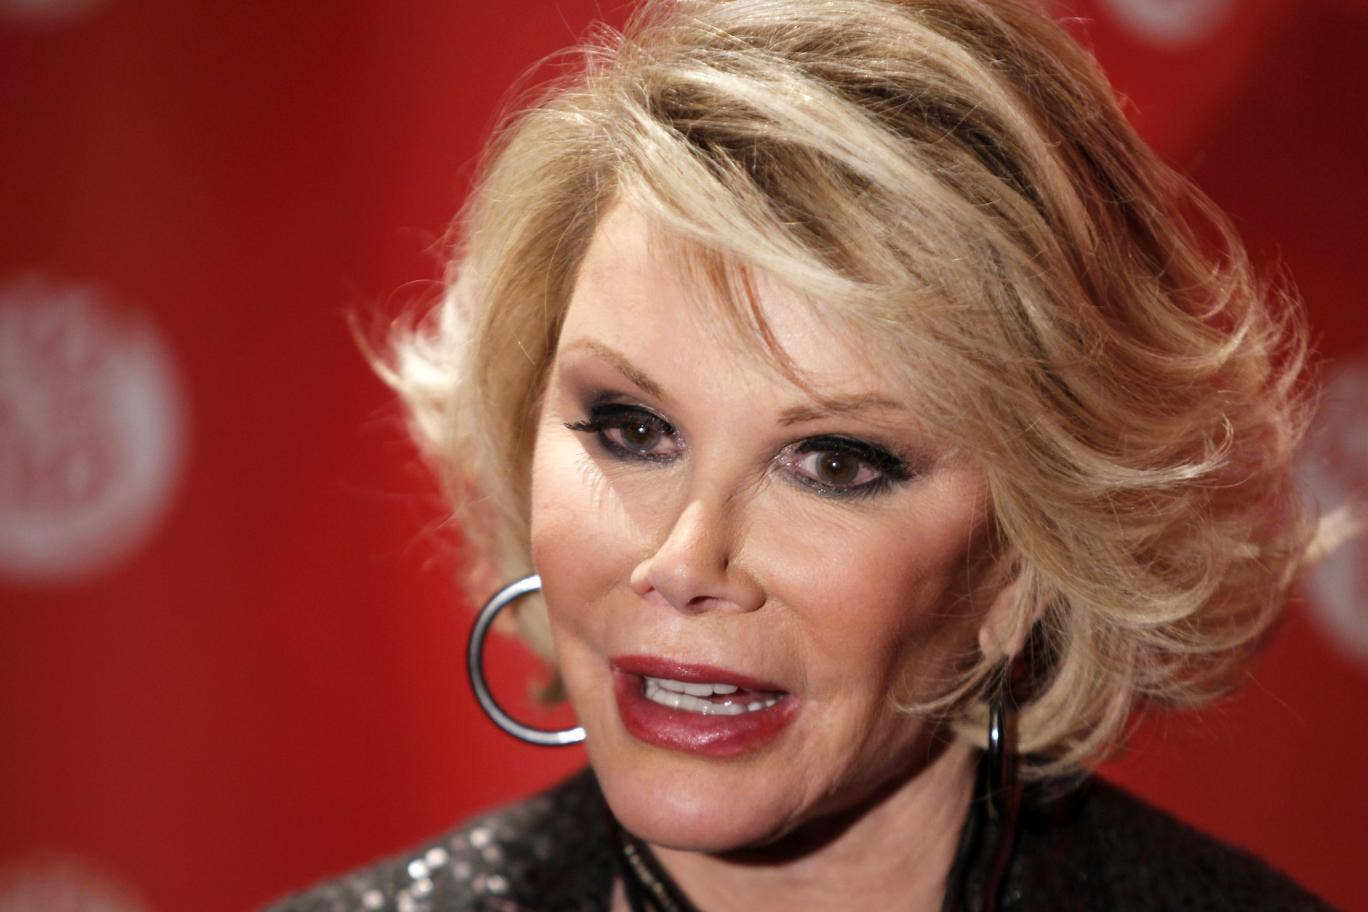 Joan Rivers has reportedly been hospitalised after she stopped breathing during surgery